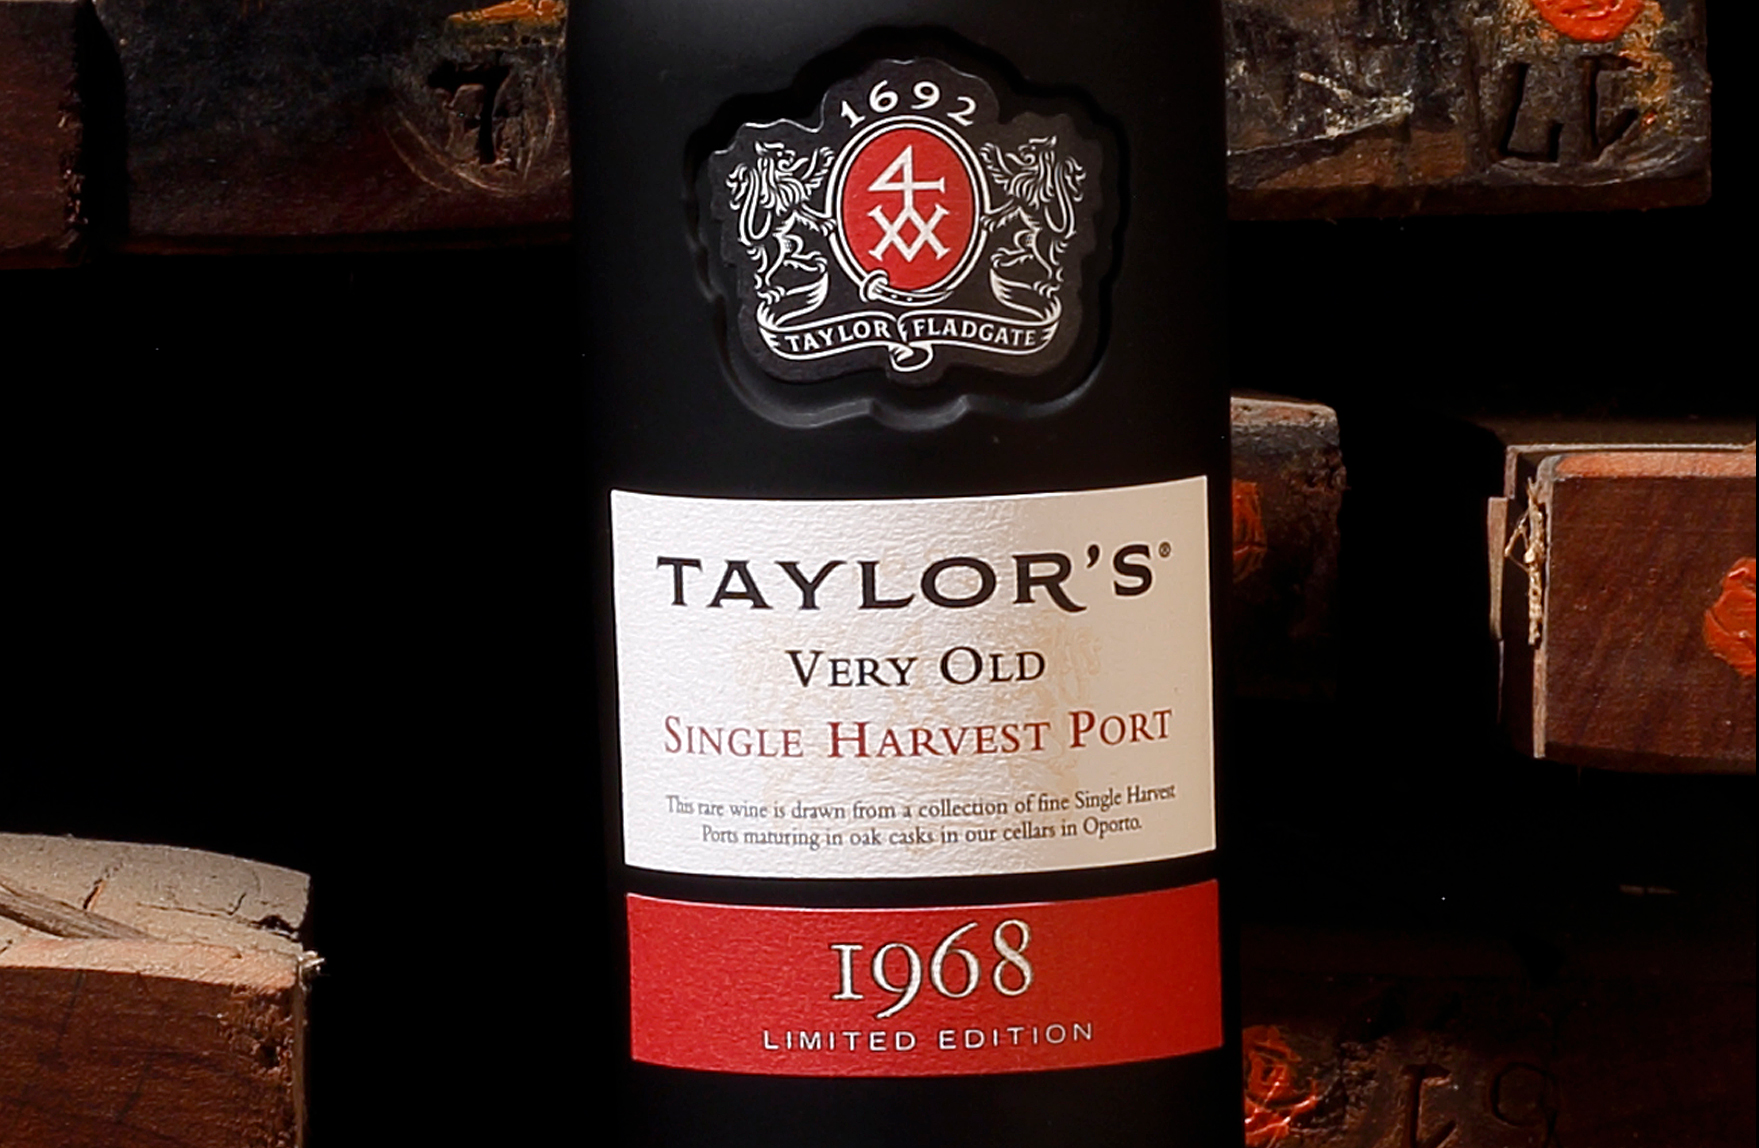 Taylor's Single Harvest Port 1968